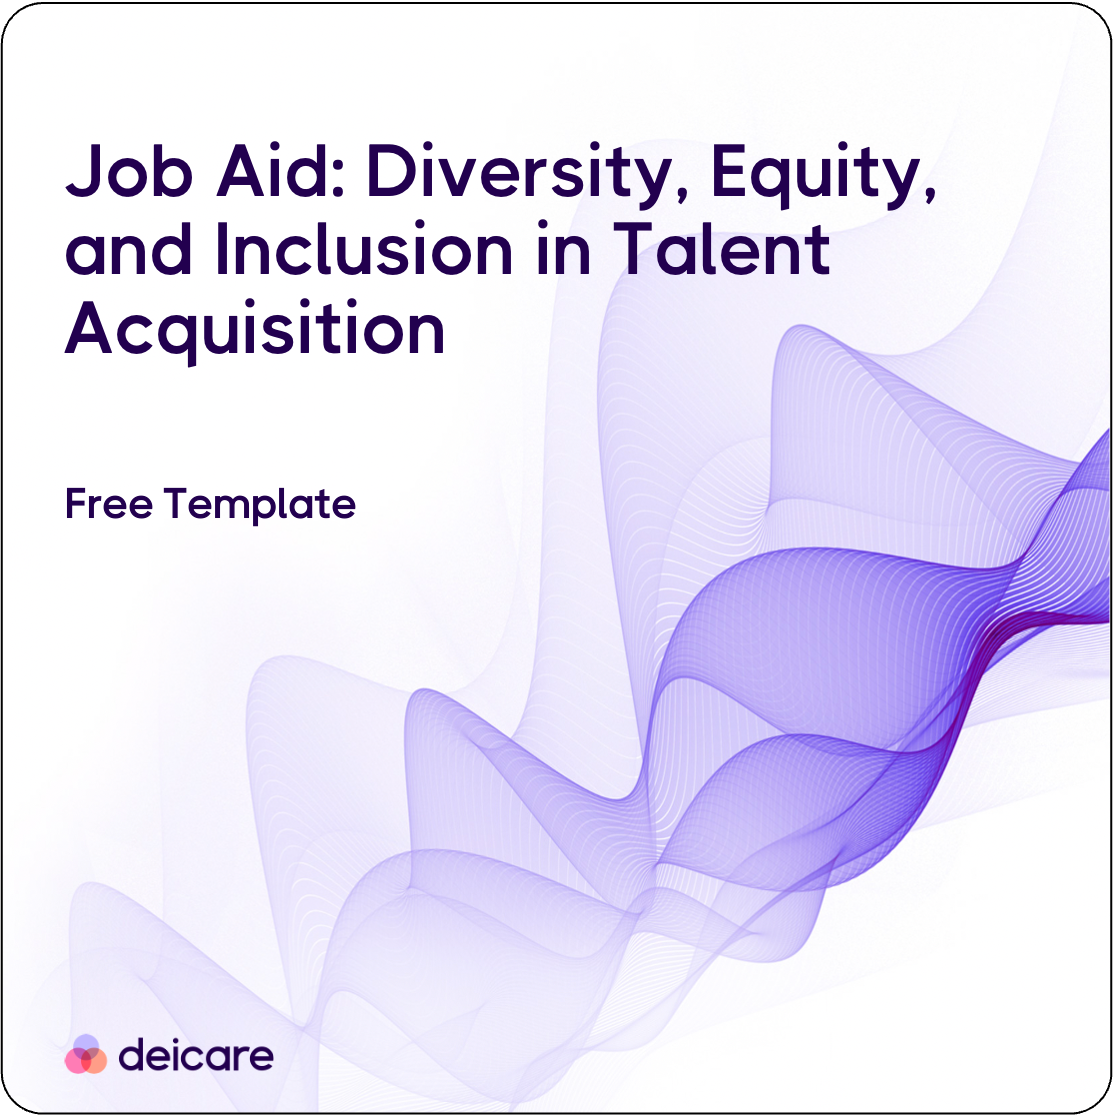 Job Aid: Diversity, Equity, and Inclusion in Talent Acquisition Template